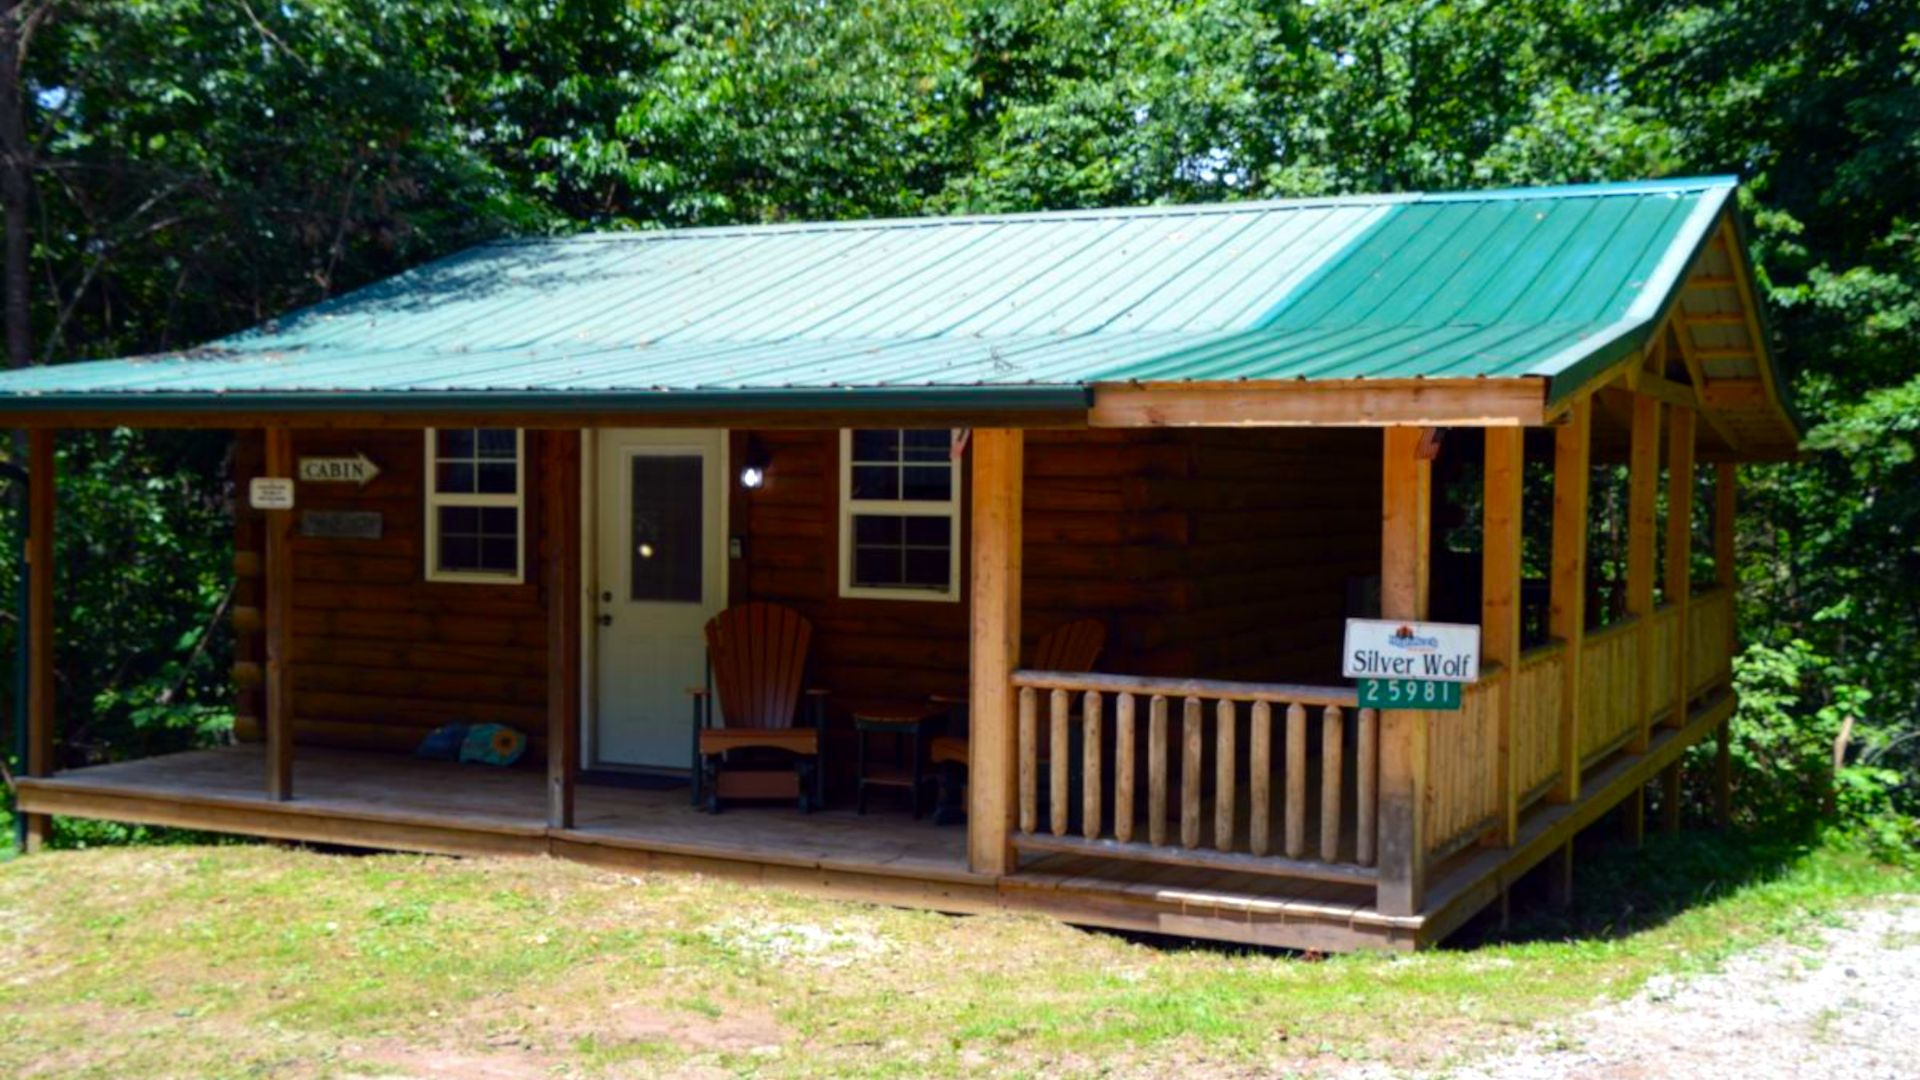 Hocking Hills Lodging Company Silver Wolf Cabin